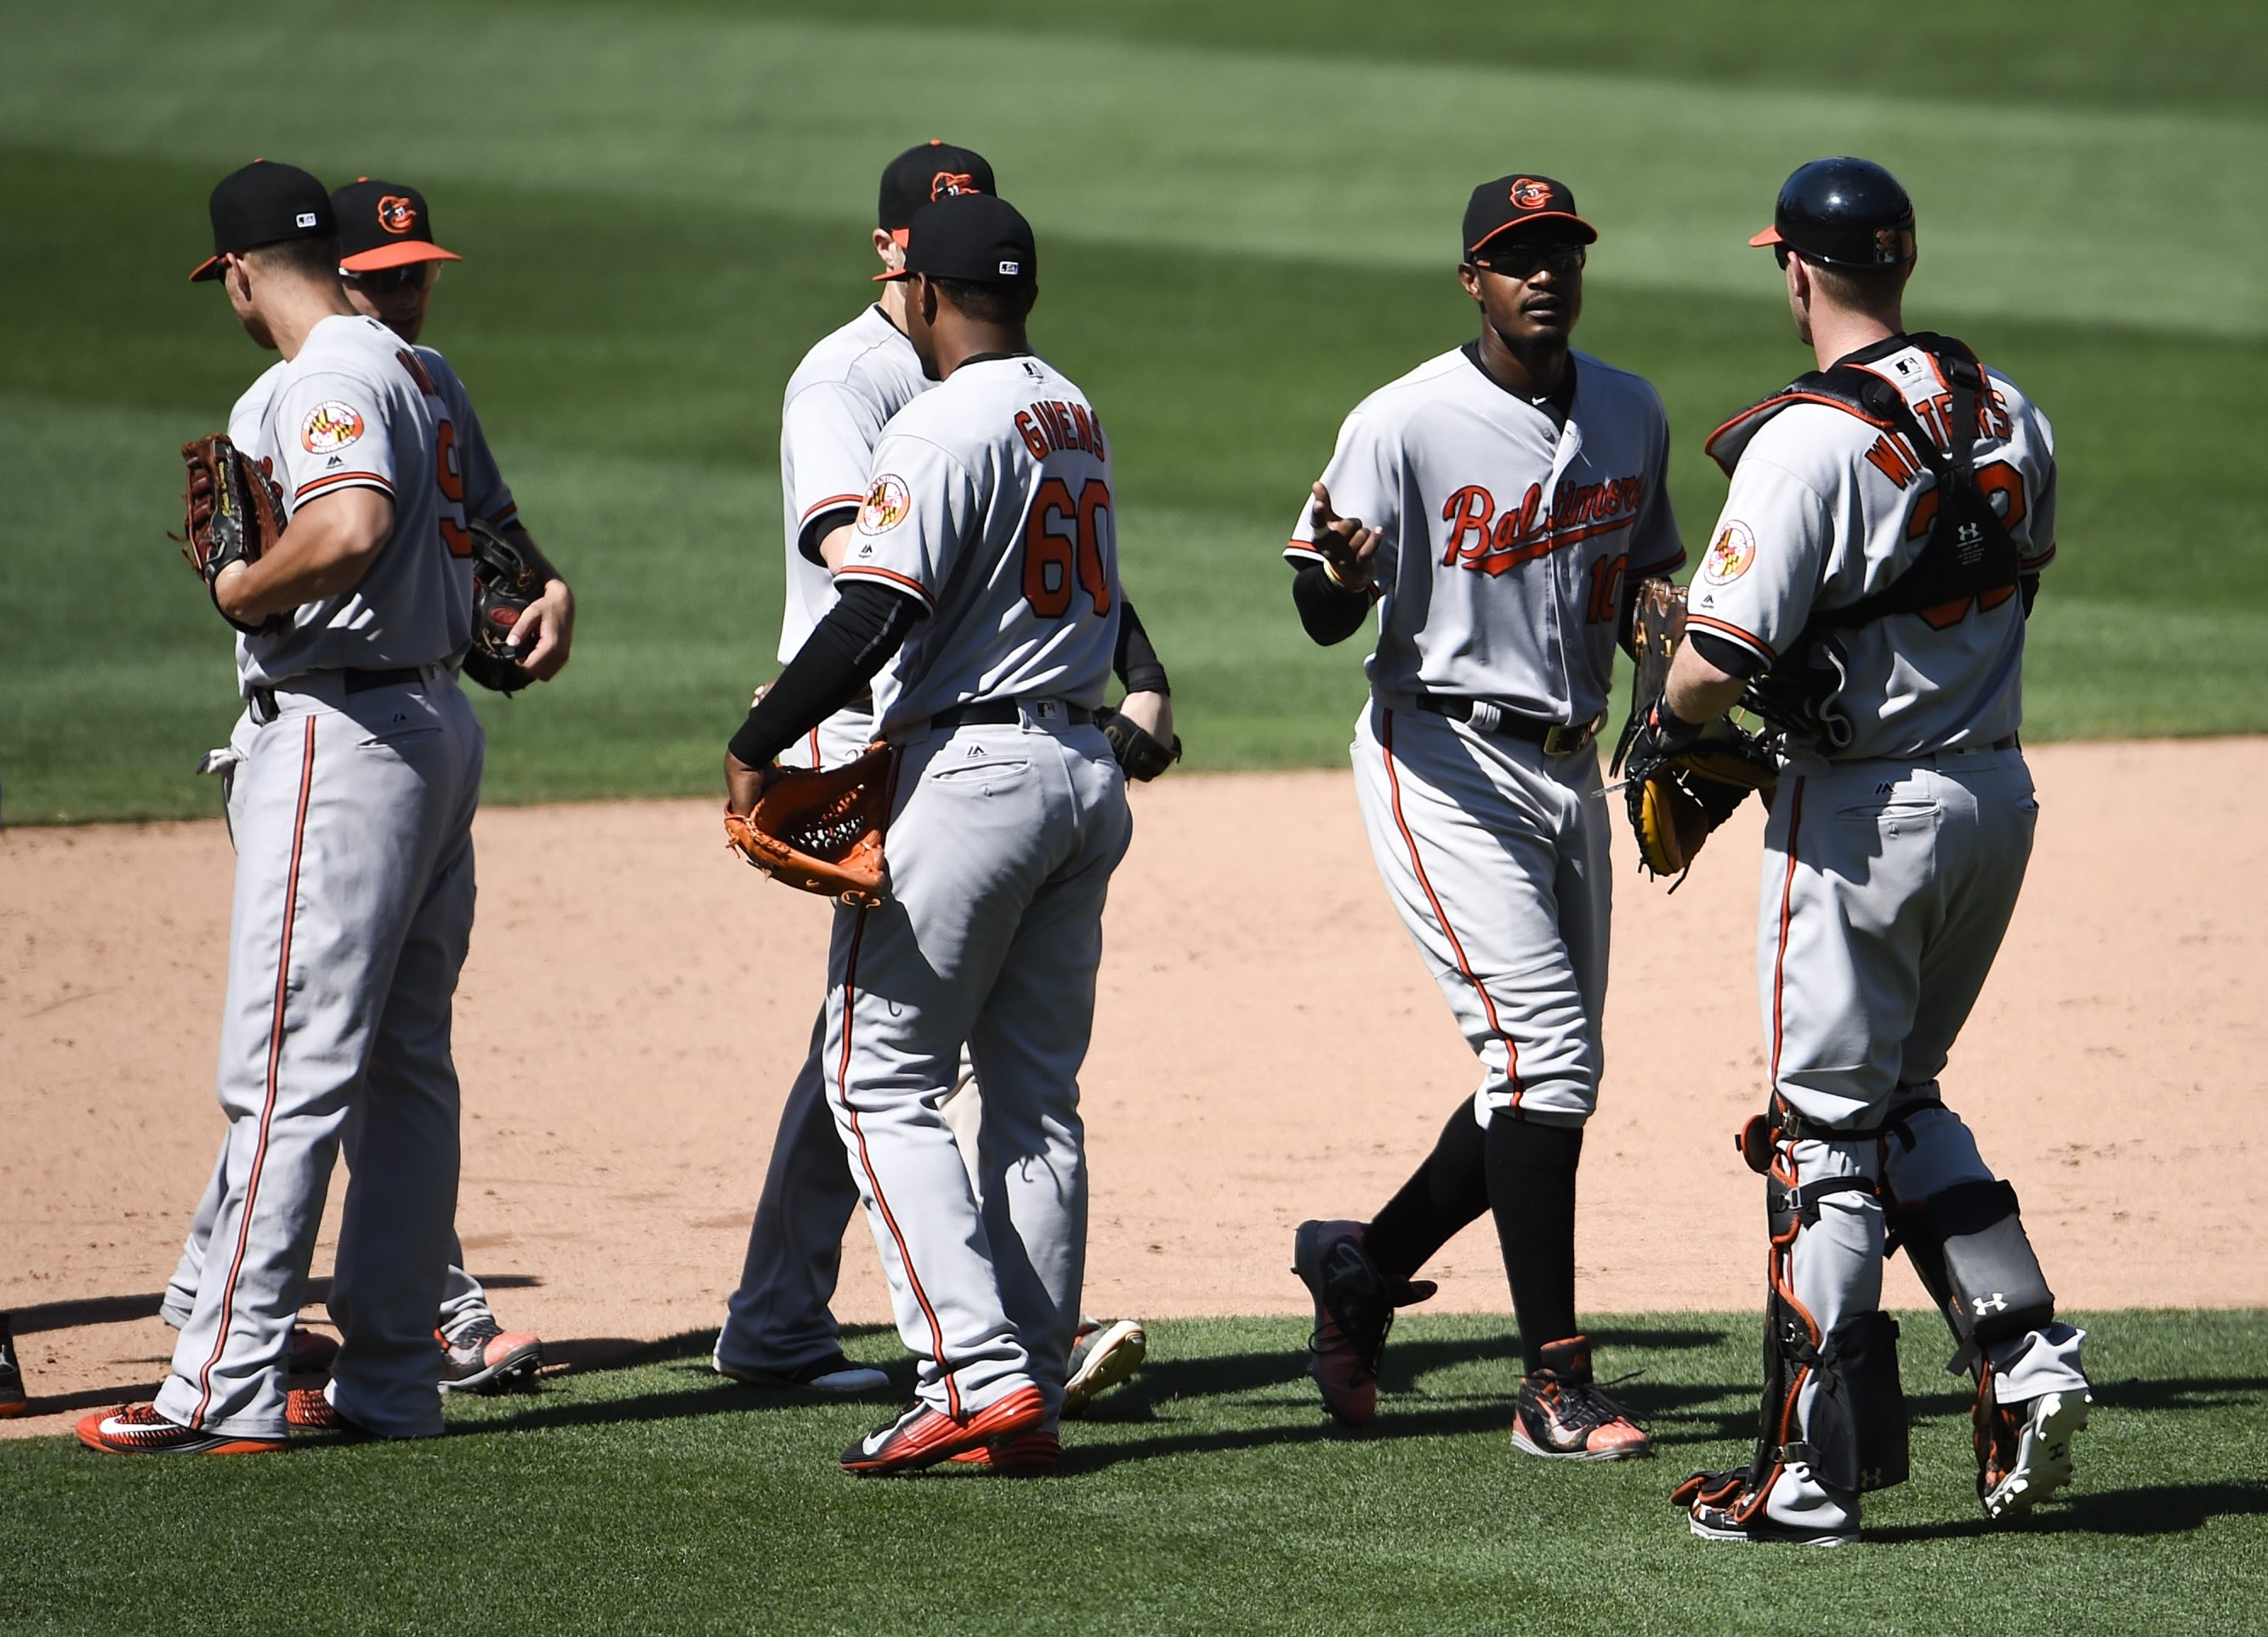 The Baltimore Orioles had a terrific June, but since 1998 the team is 51 games over .500 during July.